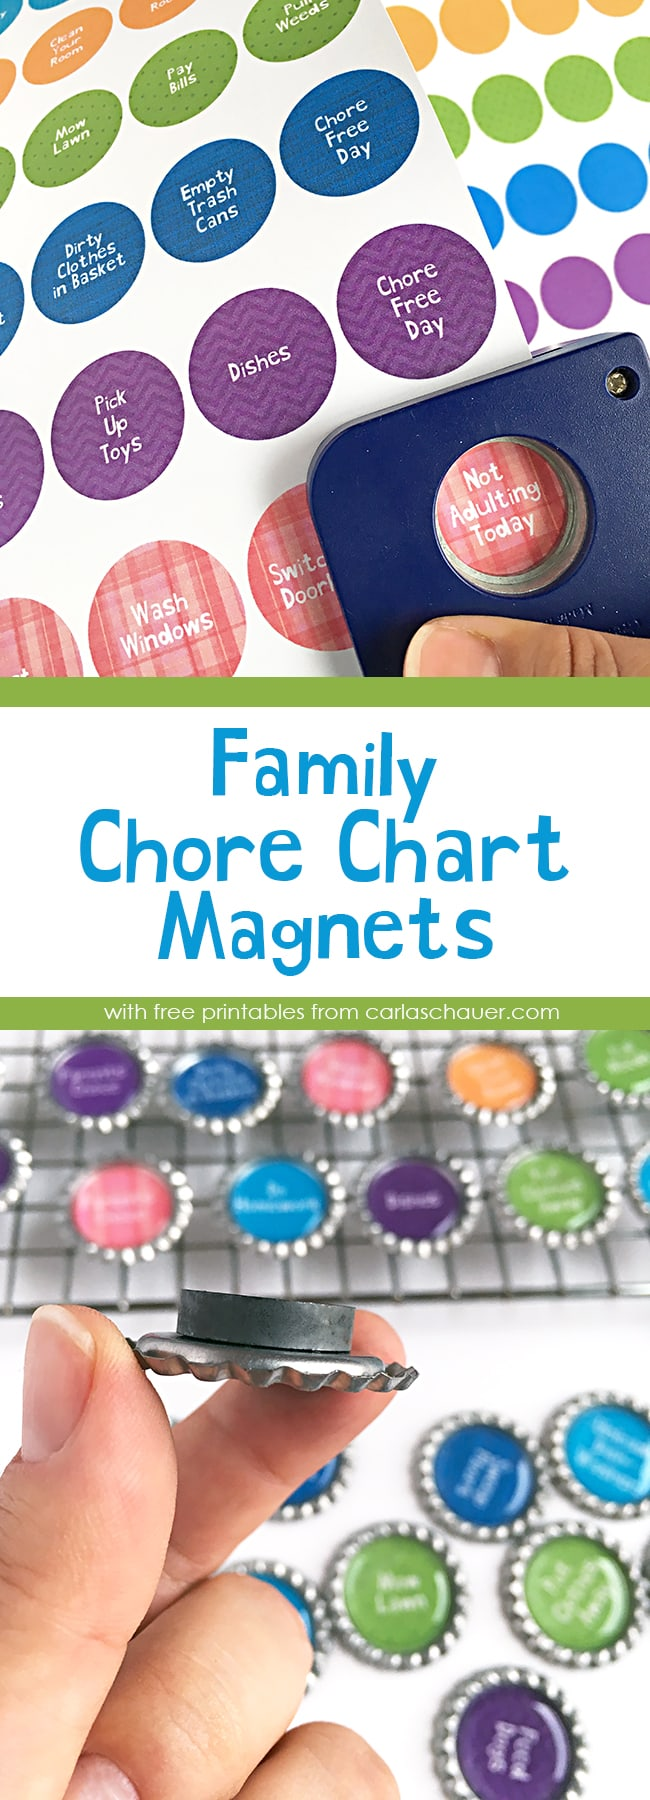 How to make family chore chart magnets using bottlecaps and printables. I can make these! | Tutorial and printables from carlaschauer.com